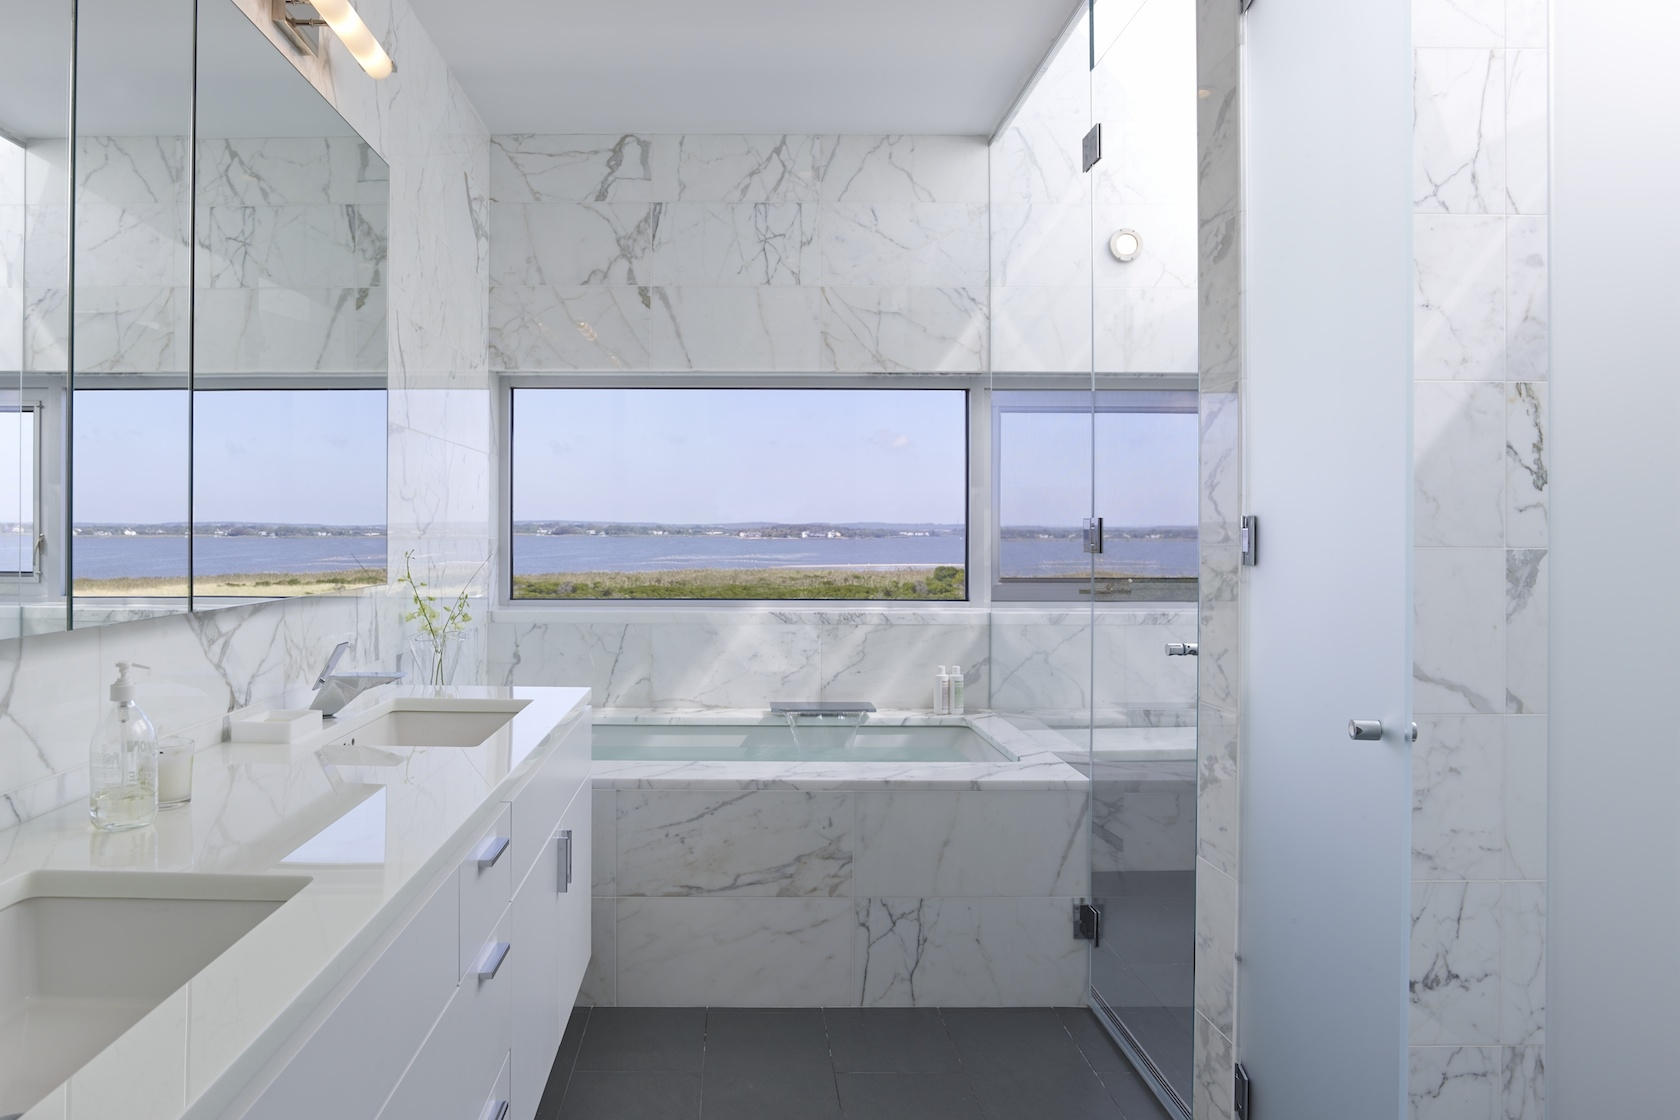 Bathroom | Spaces | Stelle Lomont Rouhani Architects | Award Winning ...